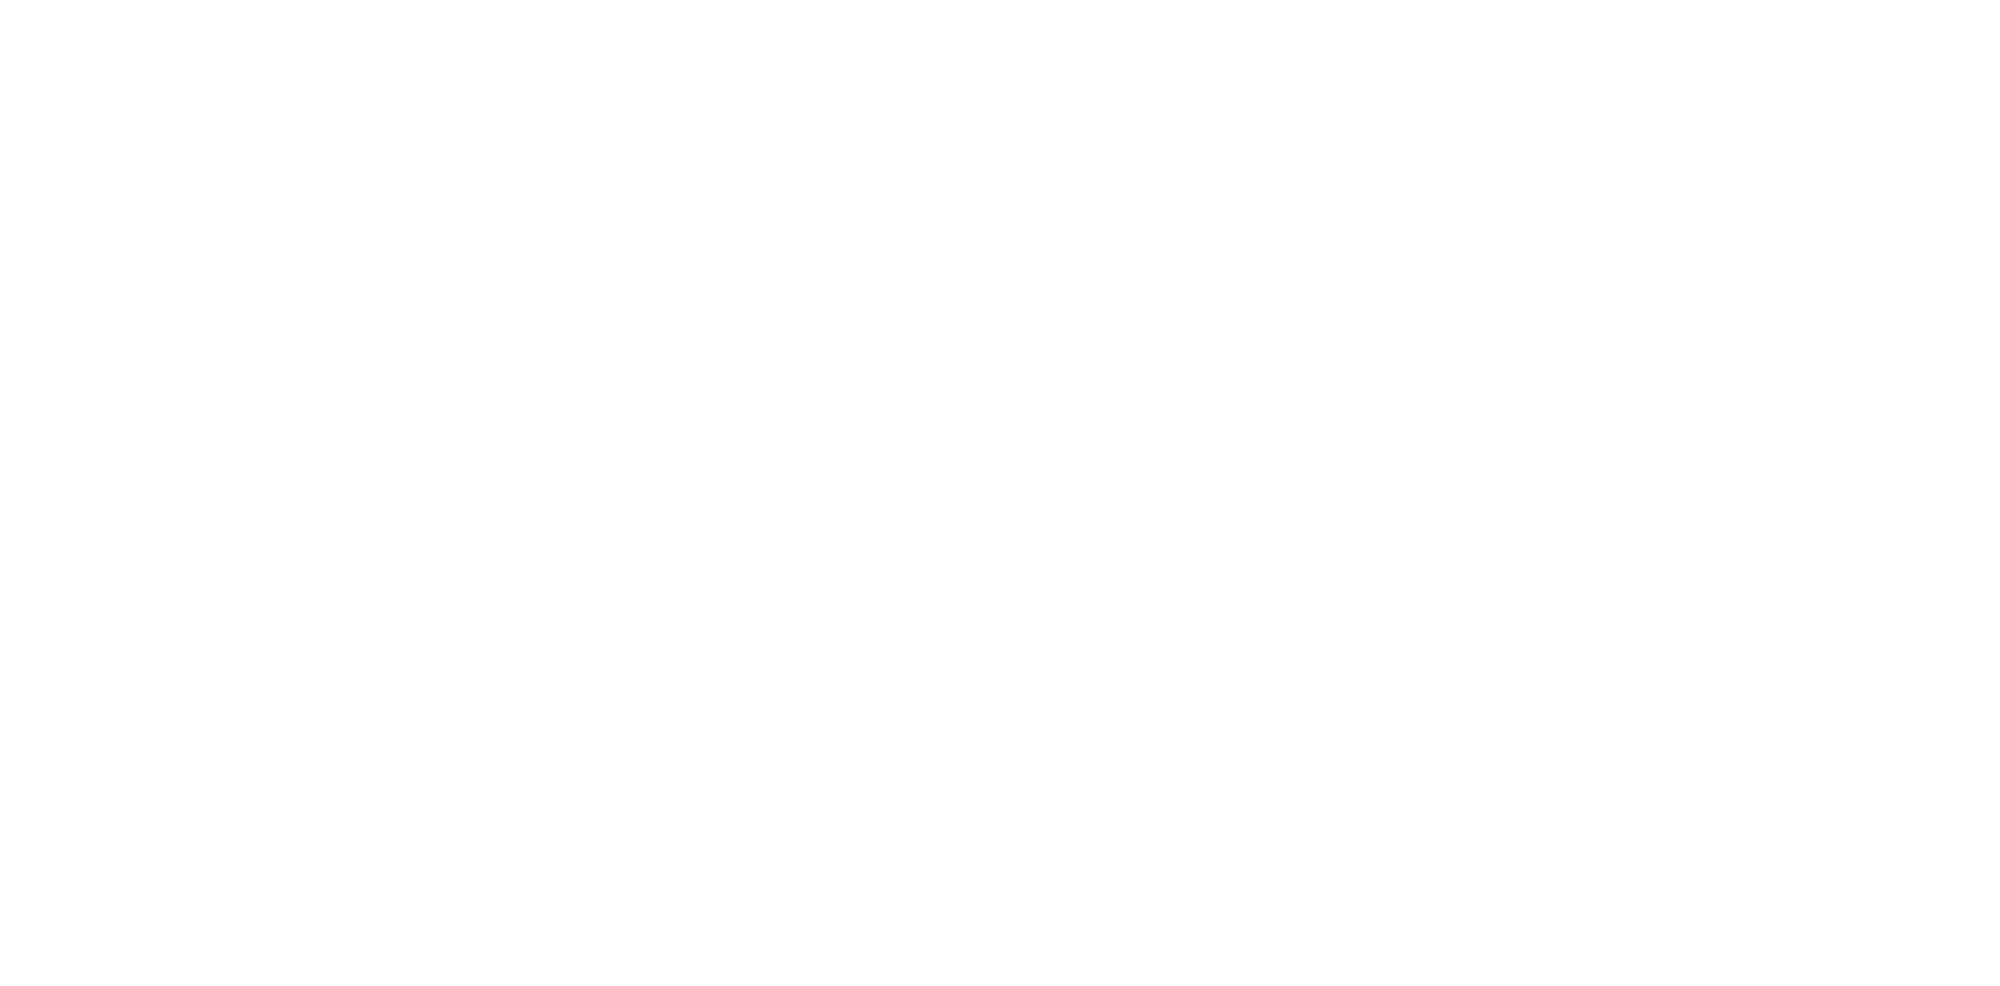 White Civic and Professional Immersion pathway logo